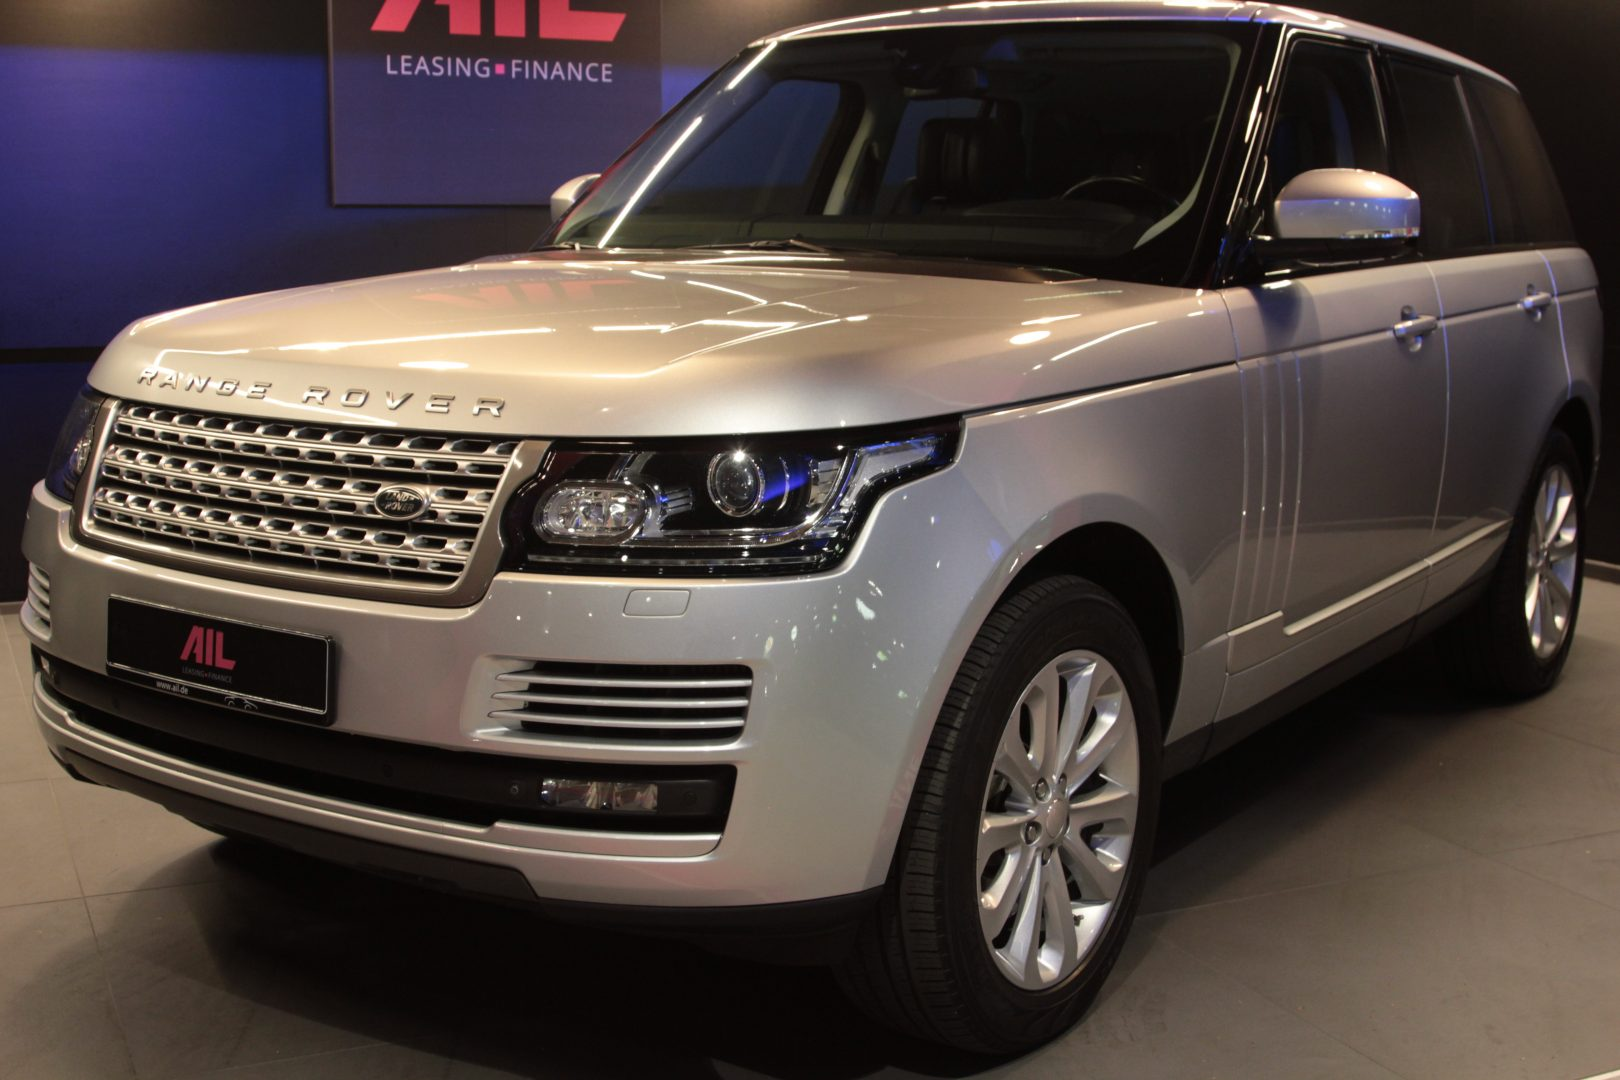 AIL Land Rover Range Rover Vogue 6